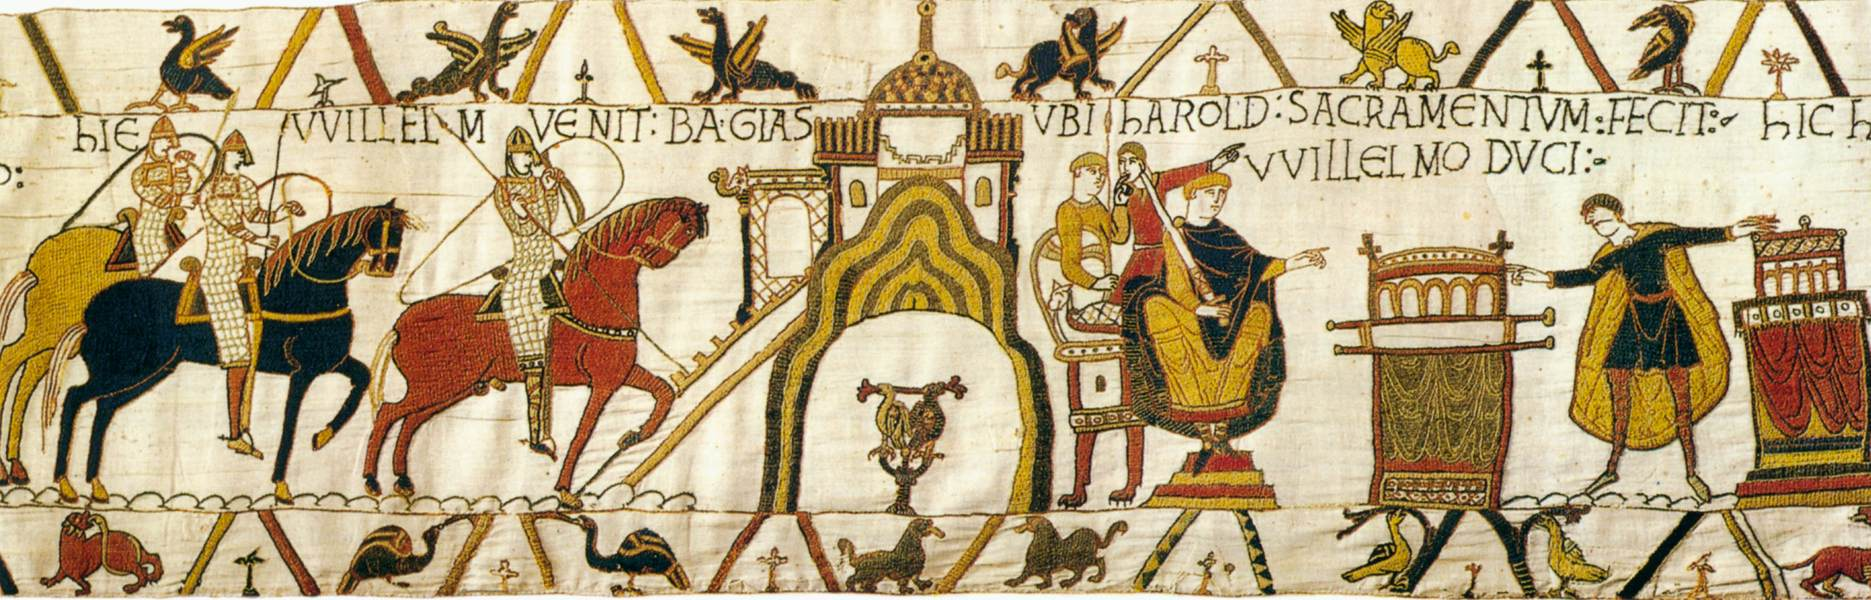 This scene depicts Duke William's arrival at Bayeux.